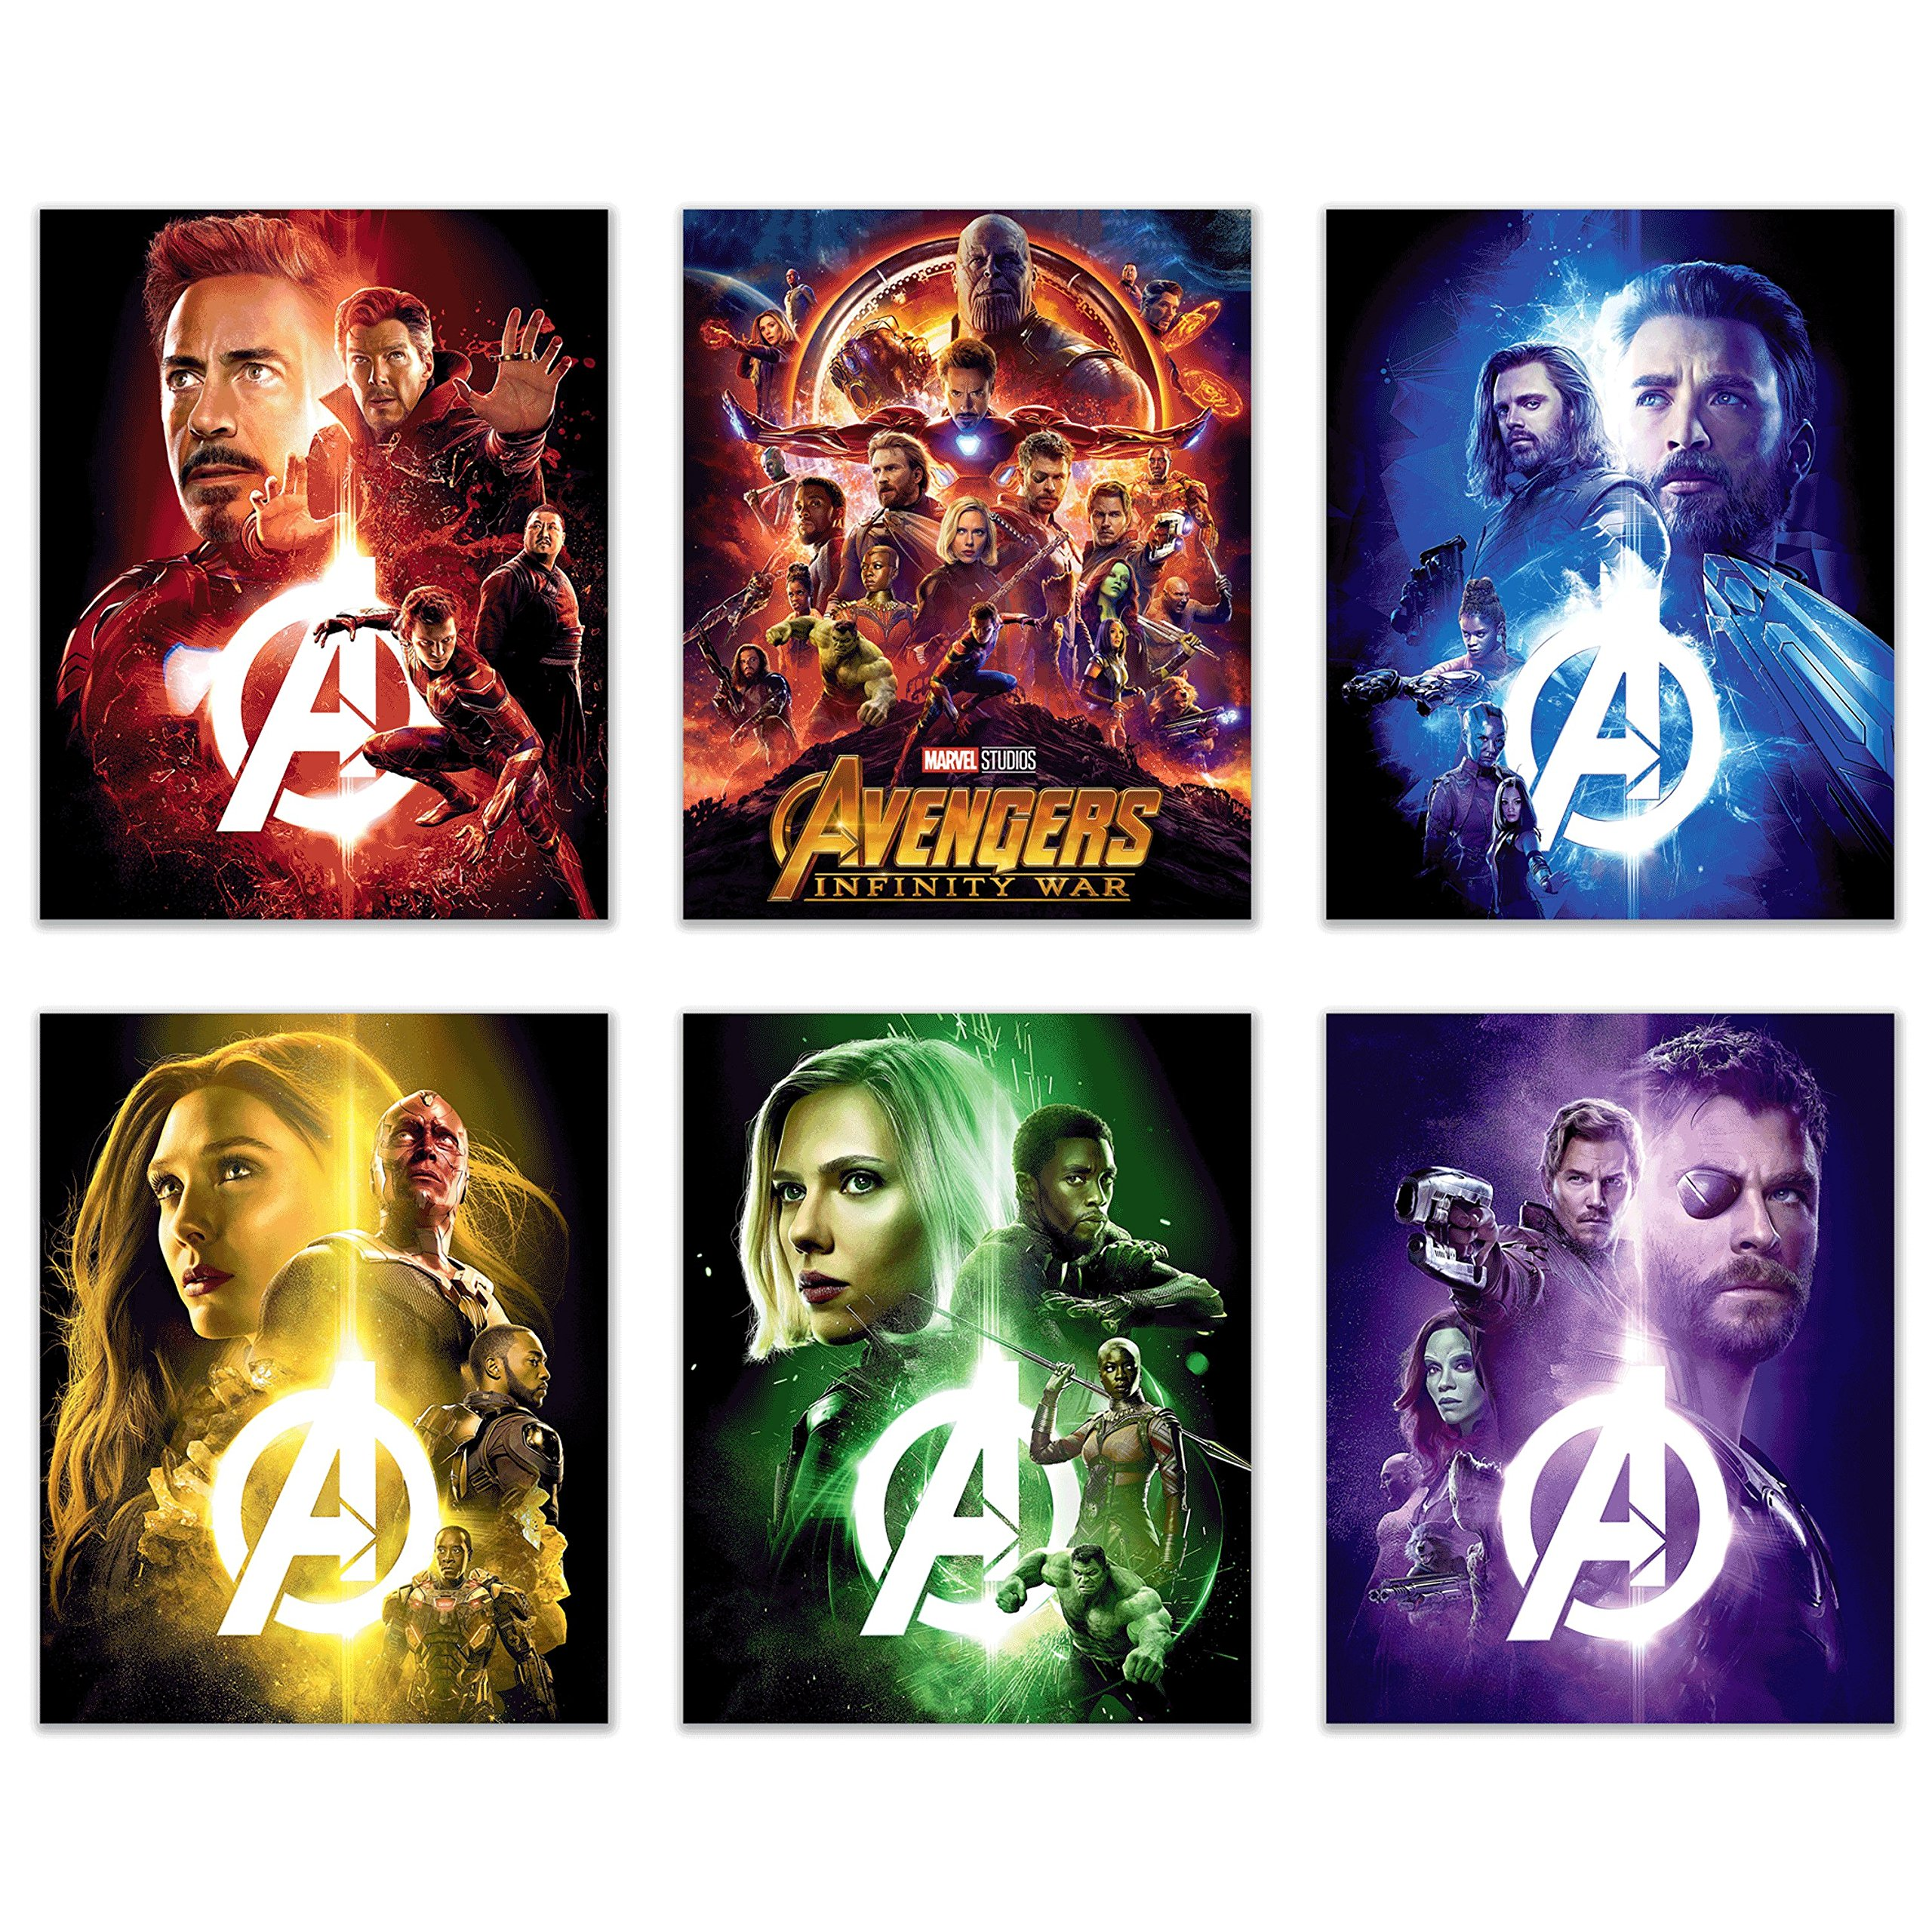 Avengers Infinity War Movie Poster Prints 8x10 - Set of Six Wall Art Photos - Black Panther - Iron Man - Captain America - Doctor Strange - Spiderman - Wong - Thor - Star Lord - Gamora - by Crystal